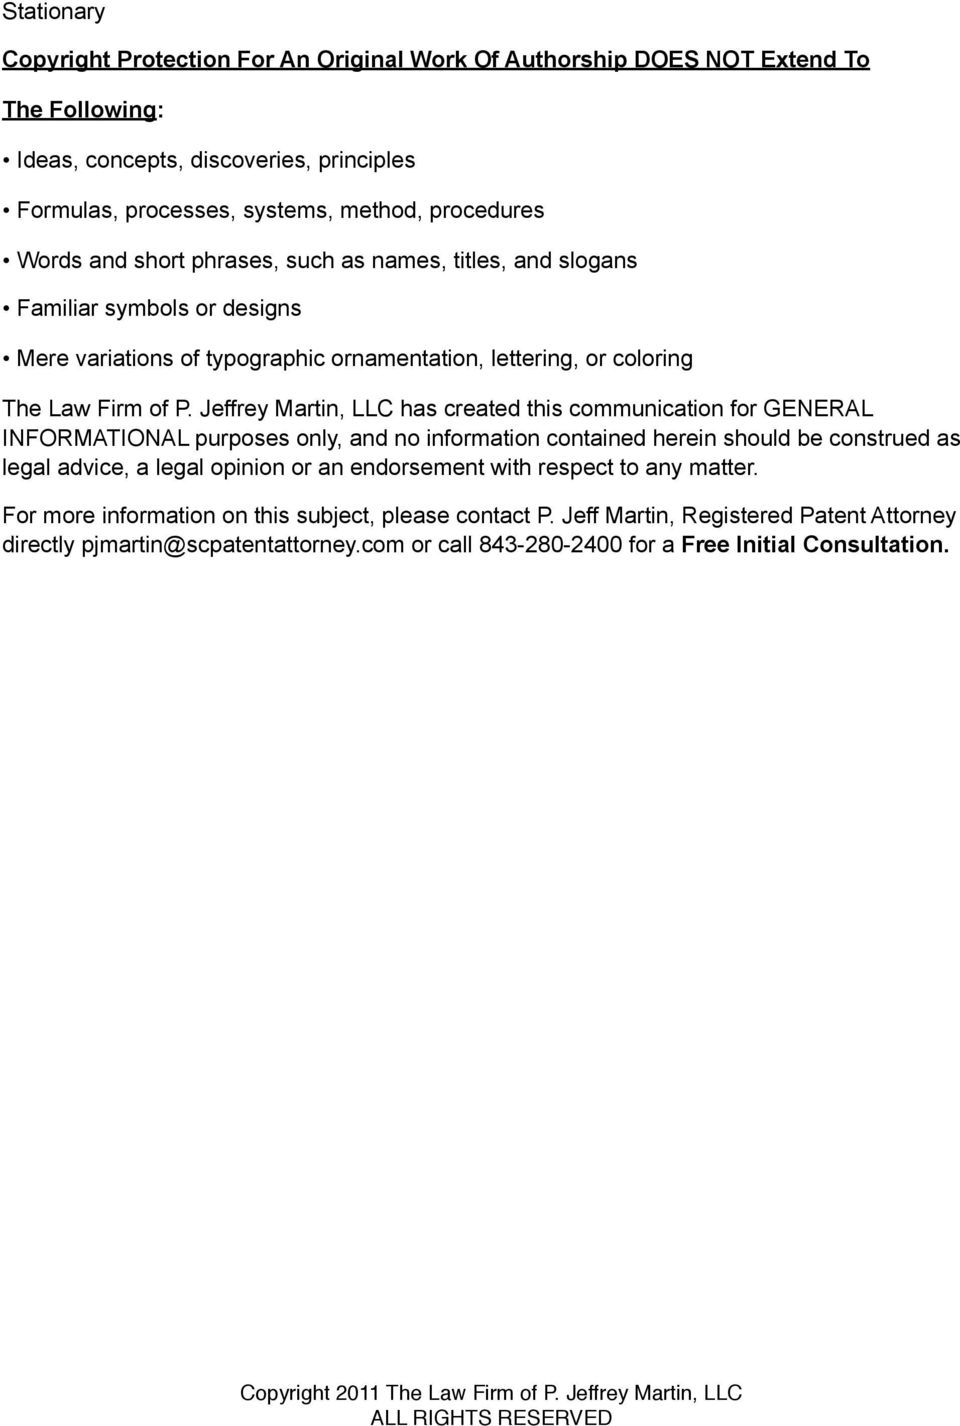 Jeffrey Martin, LLC has created this communication for GENERAL INFORMATIONAL purposes only, and no information contained herein should be construed as legal advice, a legal opinion or an